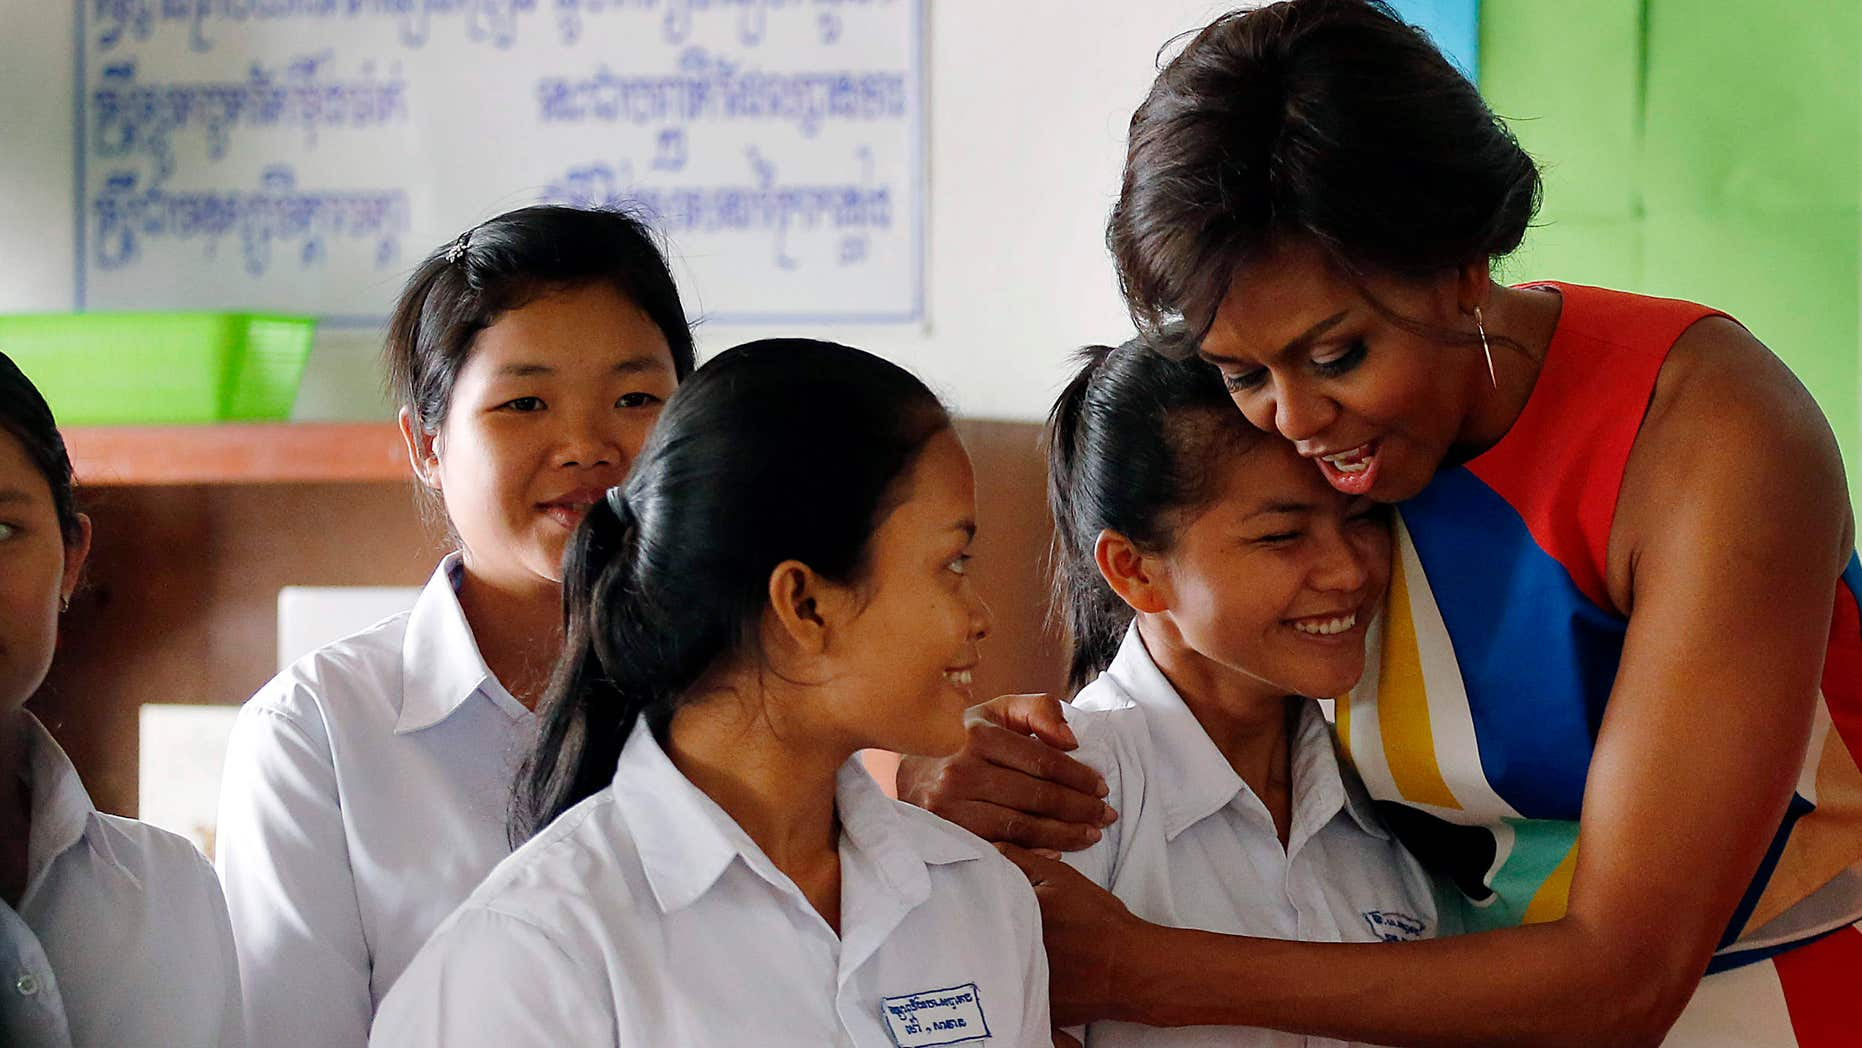 March 21, 2015: U.S. first lady Michelle Obama hugs Sohang Vean, a student at a local high school she was visiting.